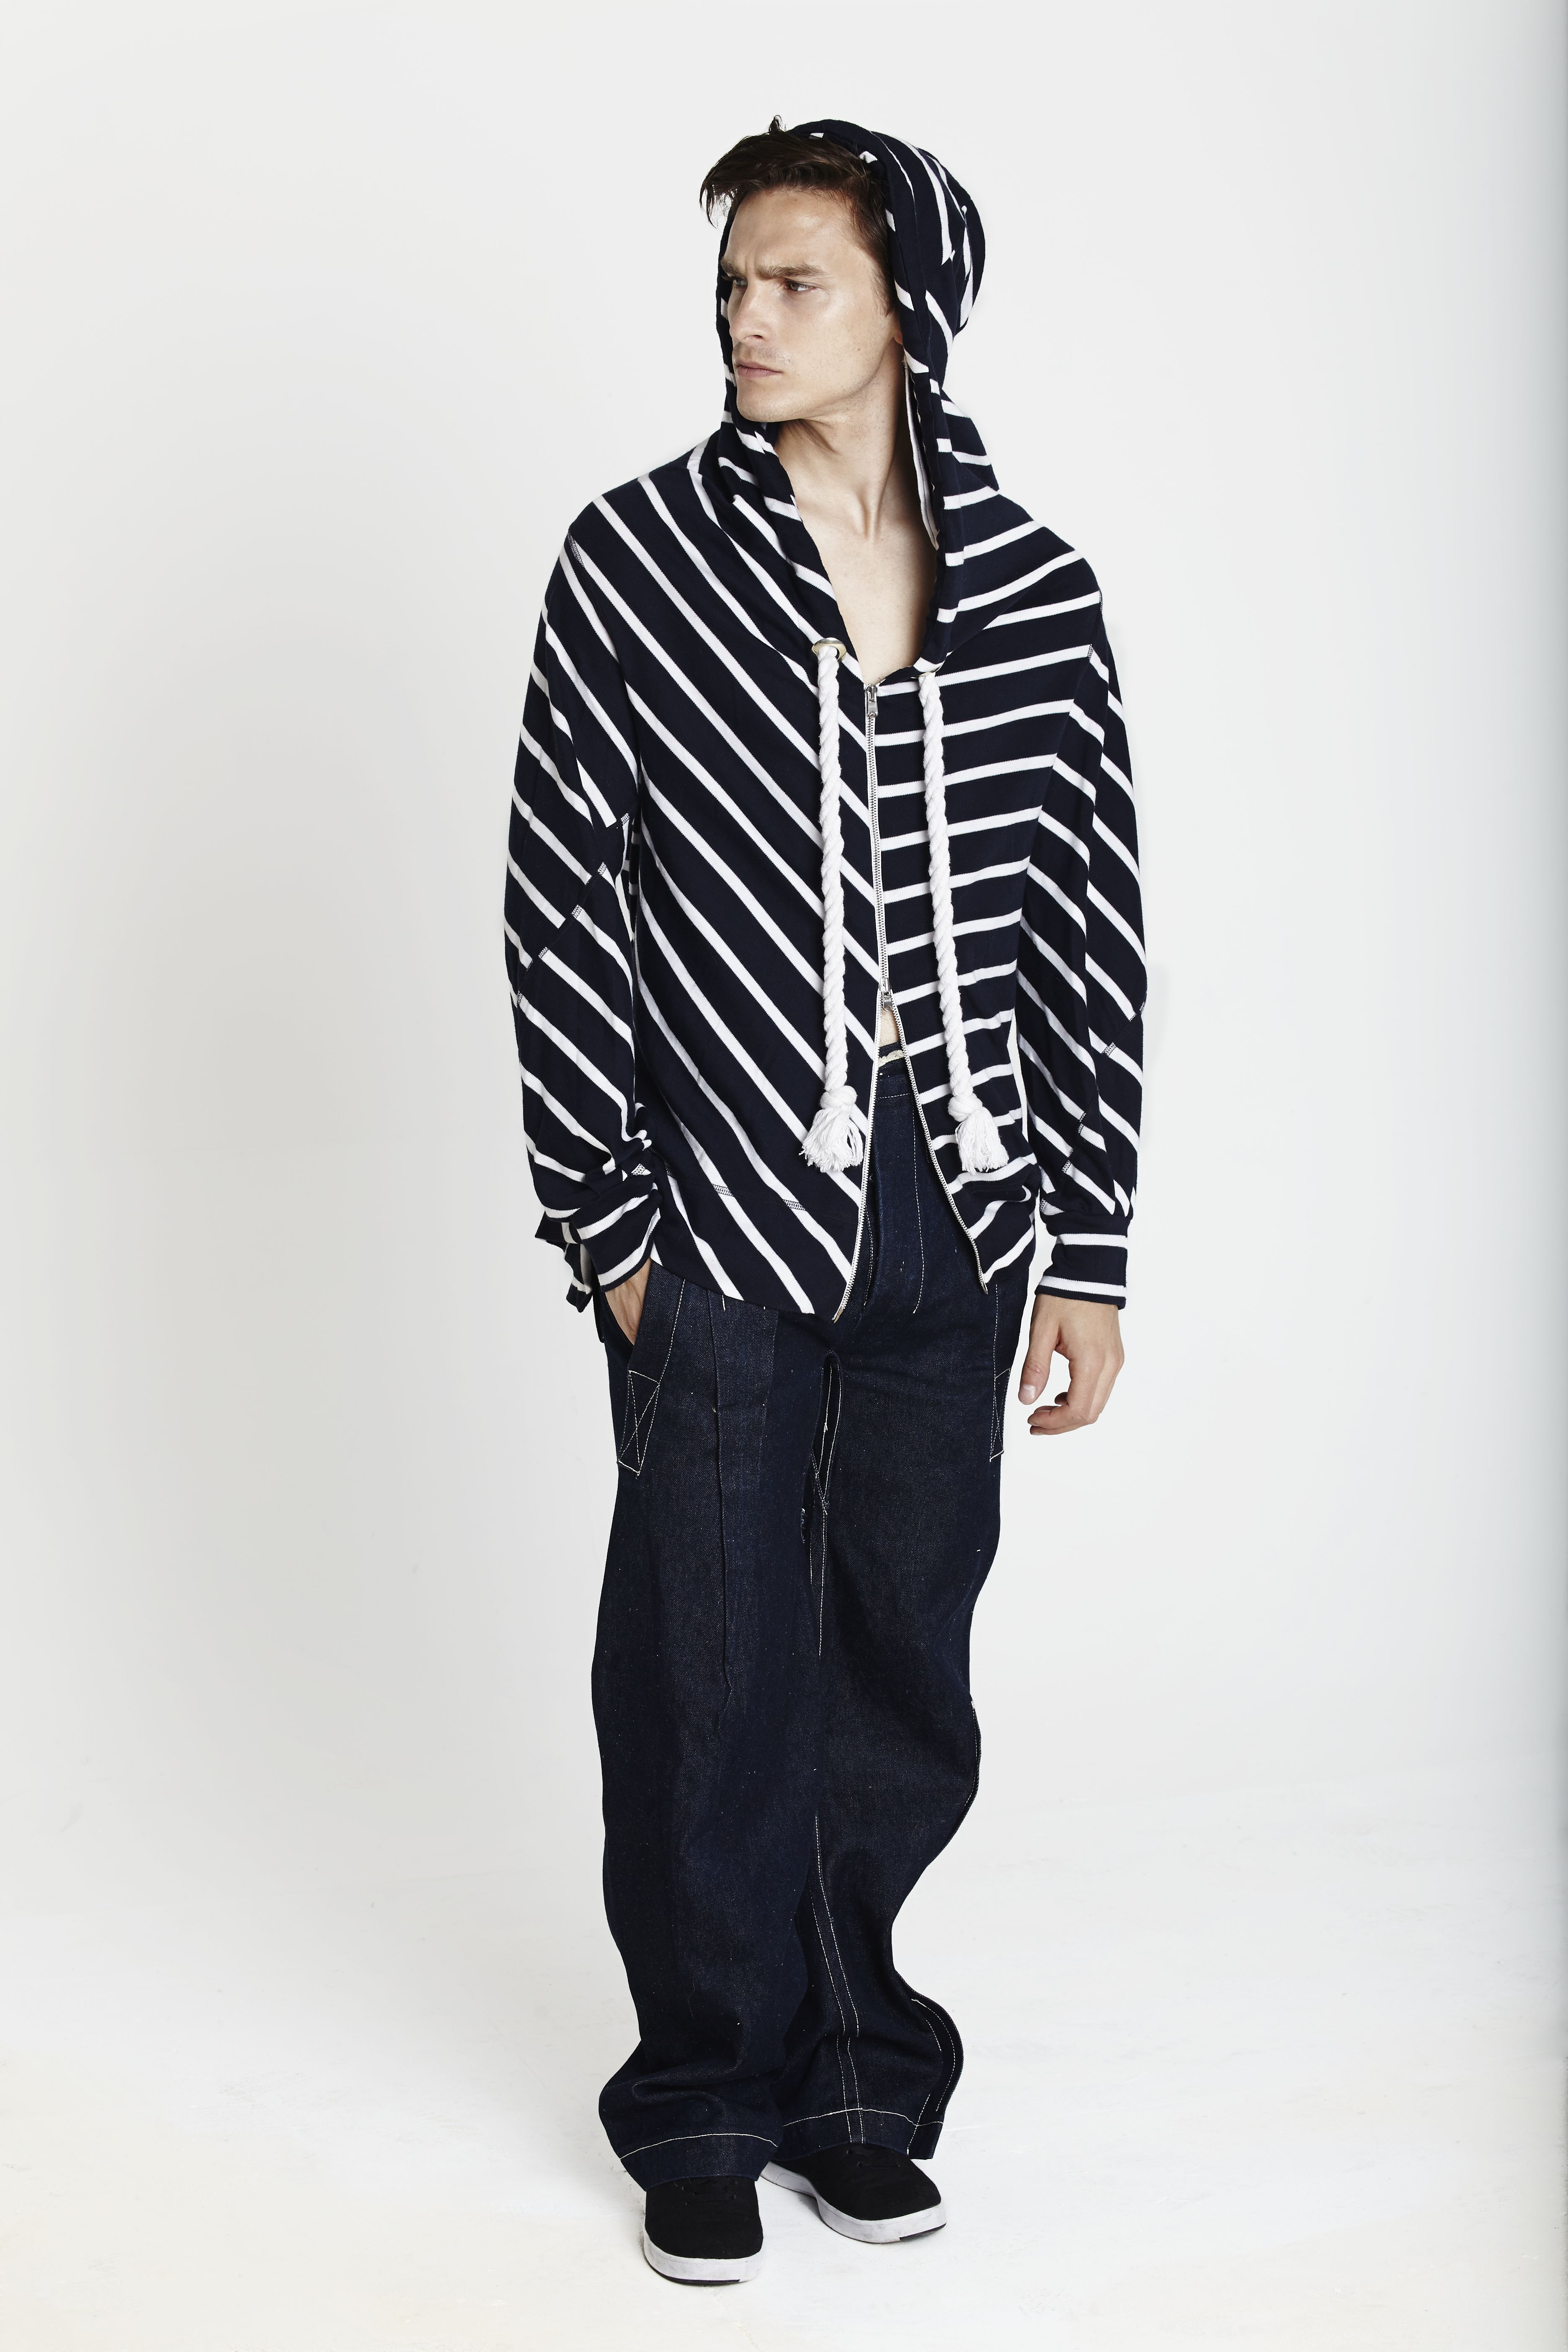 Hoodie and Jeans by Timo Rissanen (2008). Image: Mariano Garcia